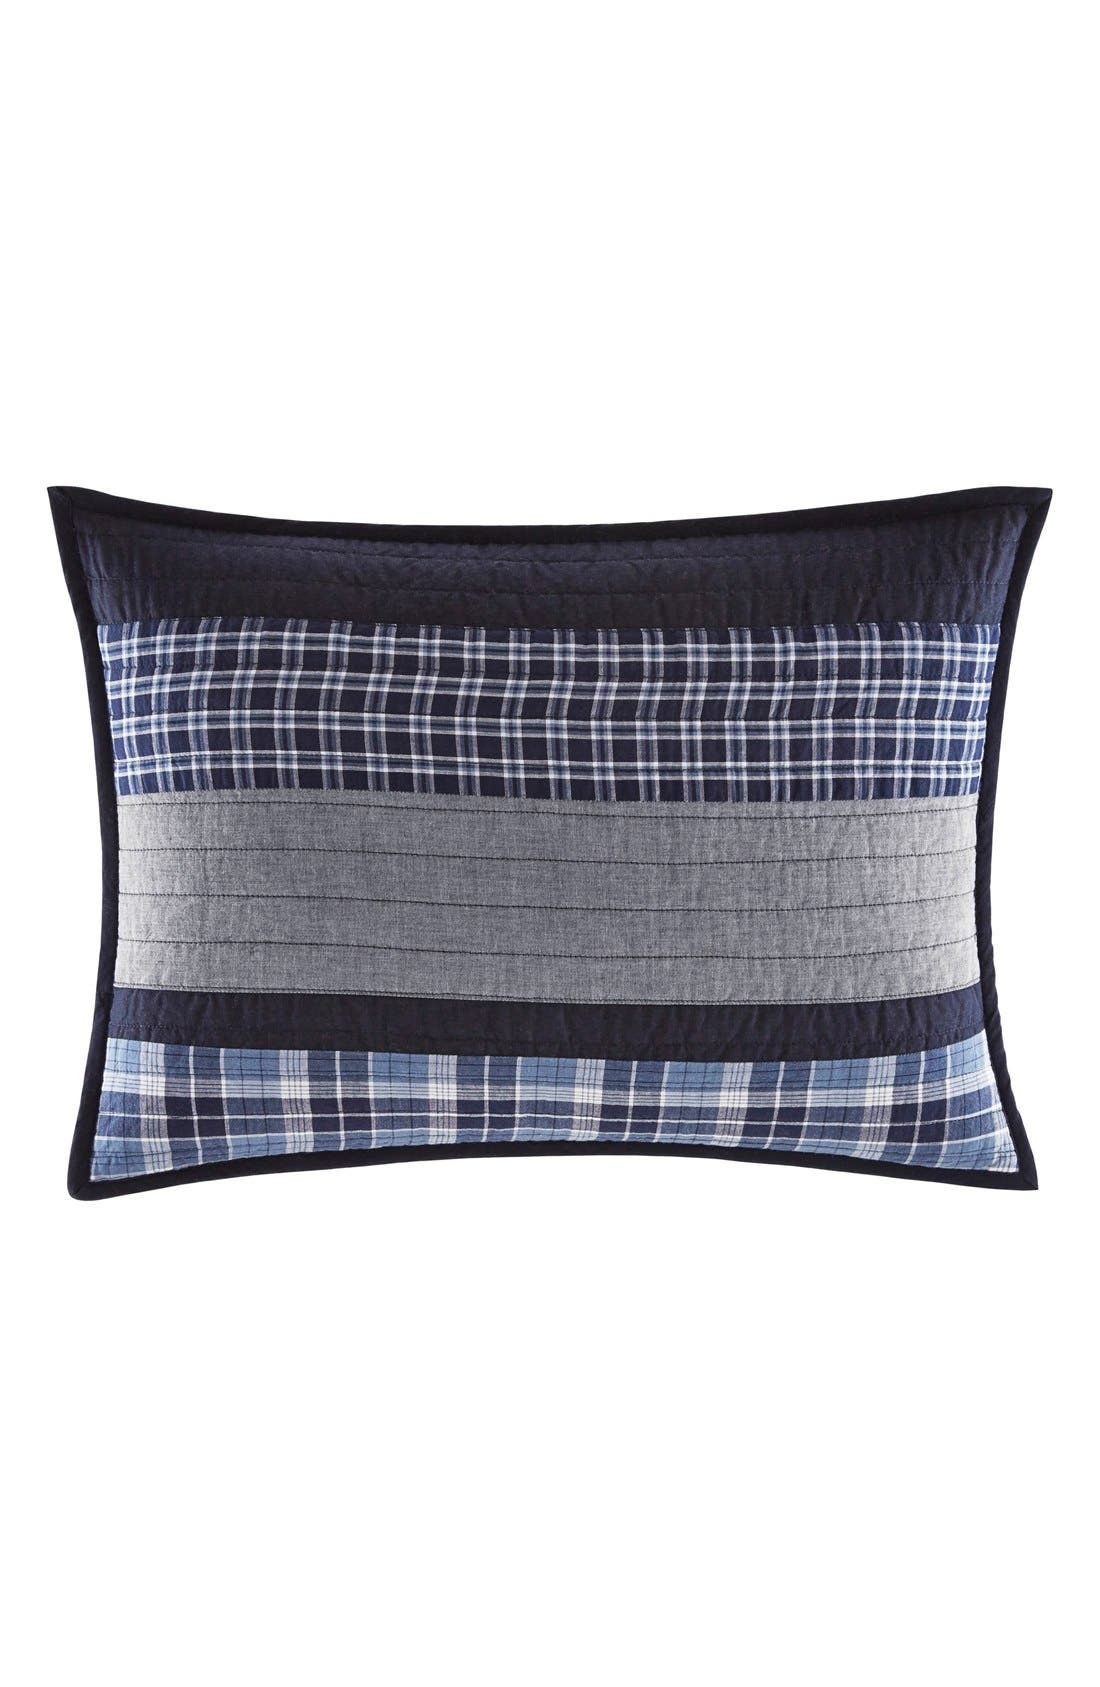 Alternate Image 1 Selected - Nautica 'Adleson' Quilted Standard Sham